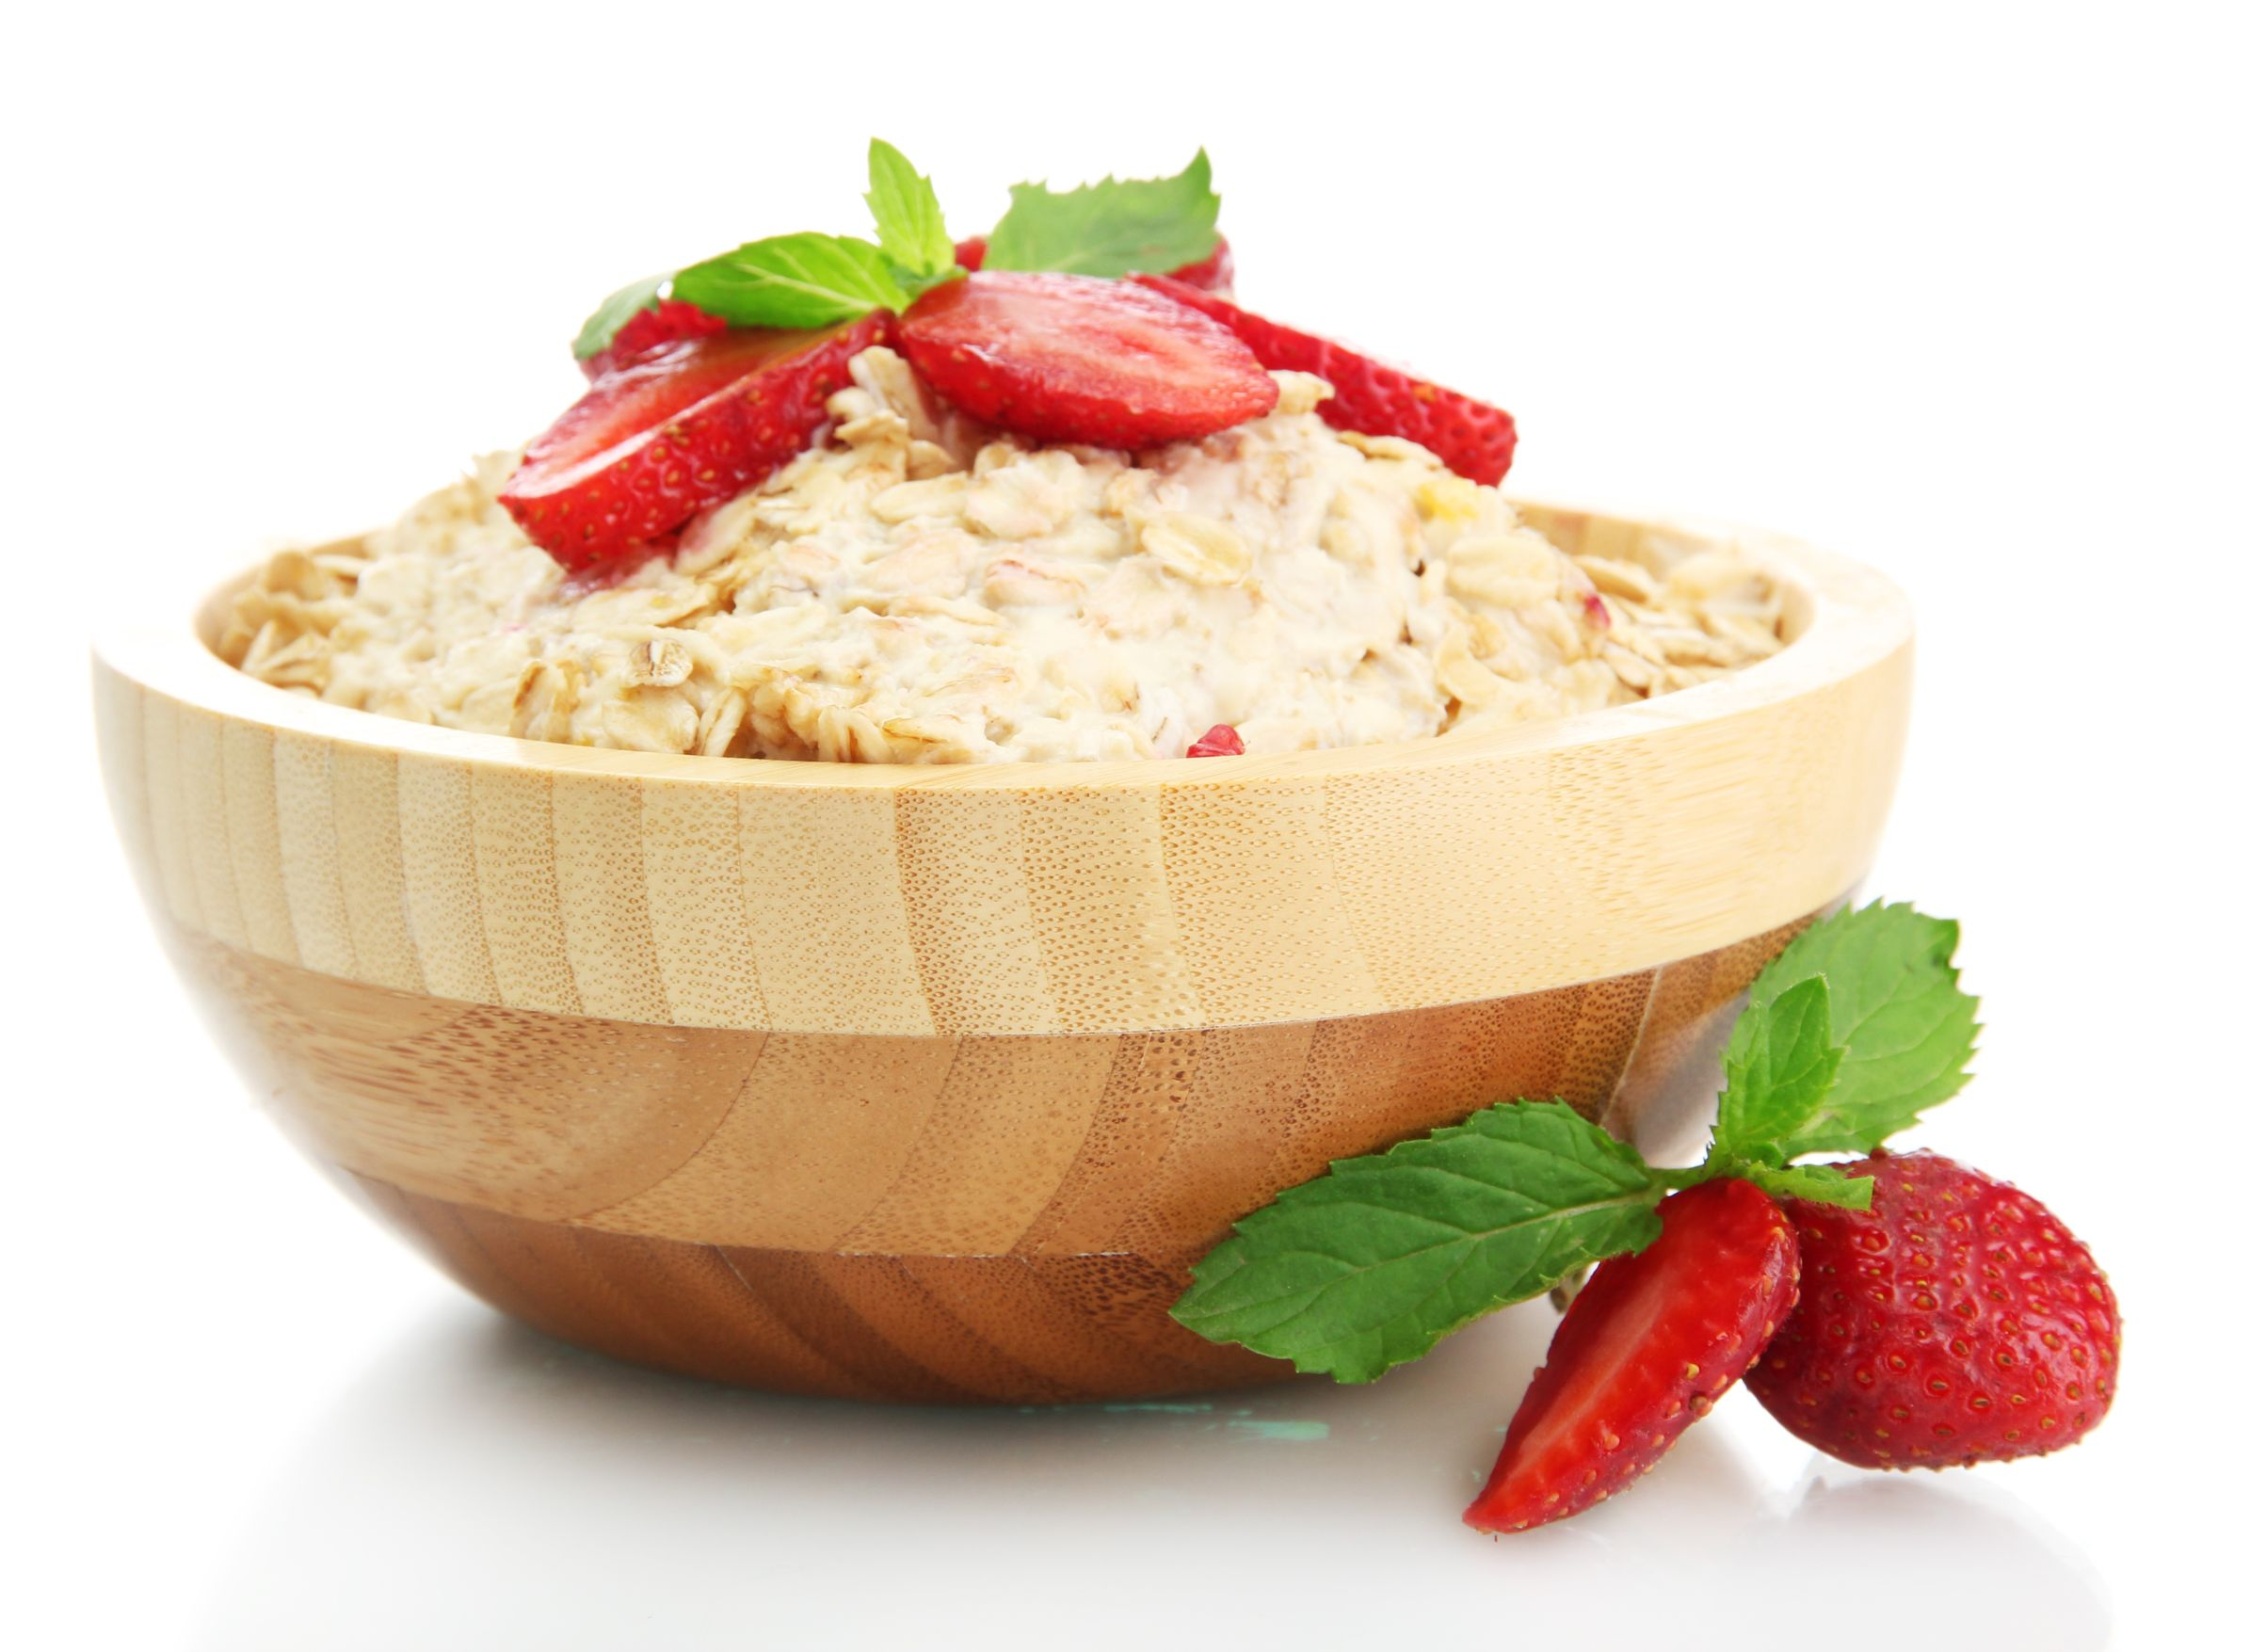 15368704 tasty oatmeal with strawberries, isolated on white